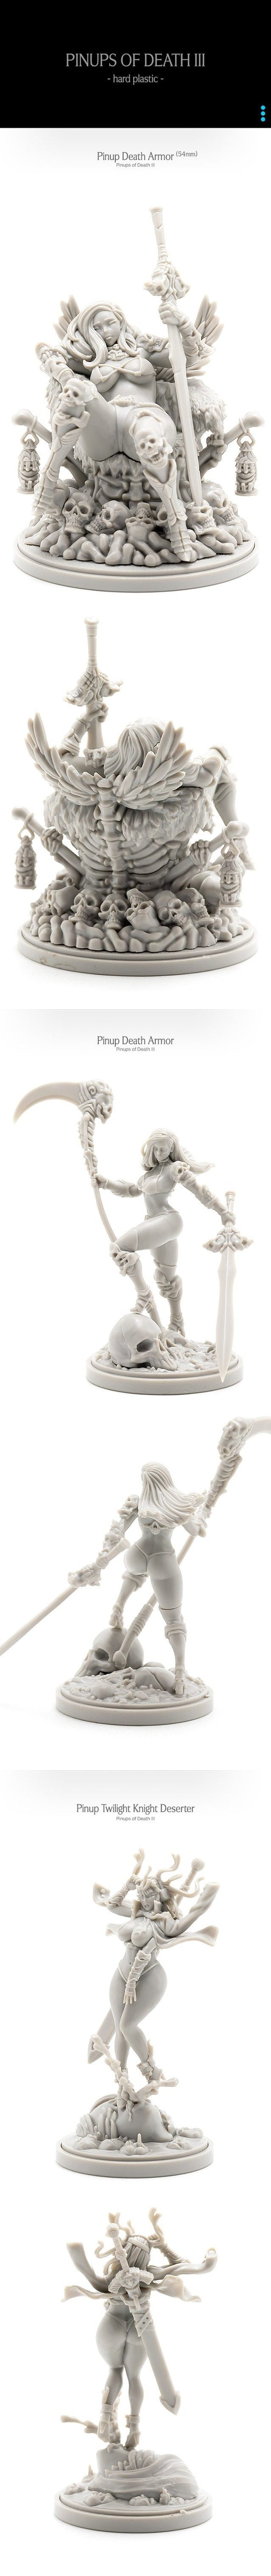 Kingdom Death Monster: Pinups of Death III (Kickstarter Pre-Order Special) Kickstarter Board Game Supplement Kingdom Death